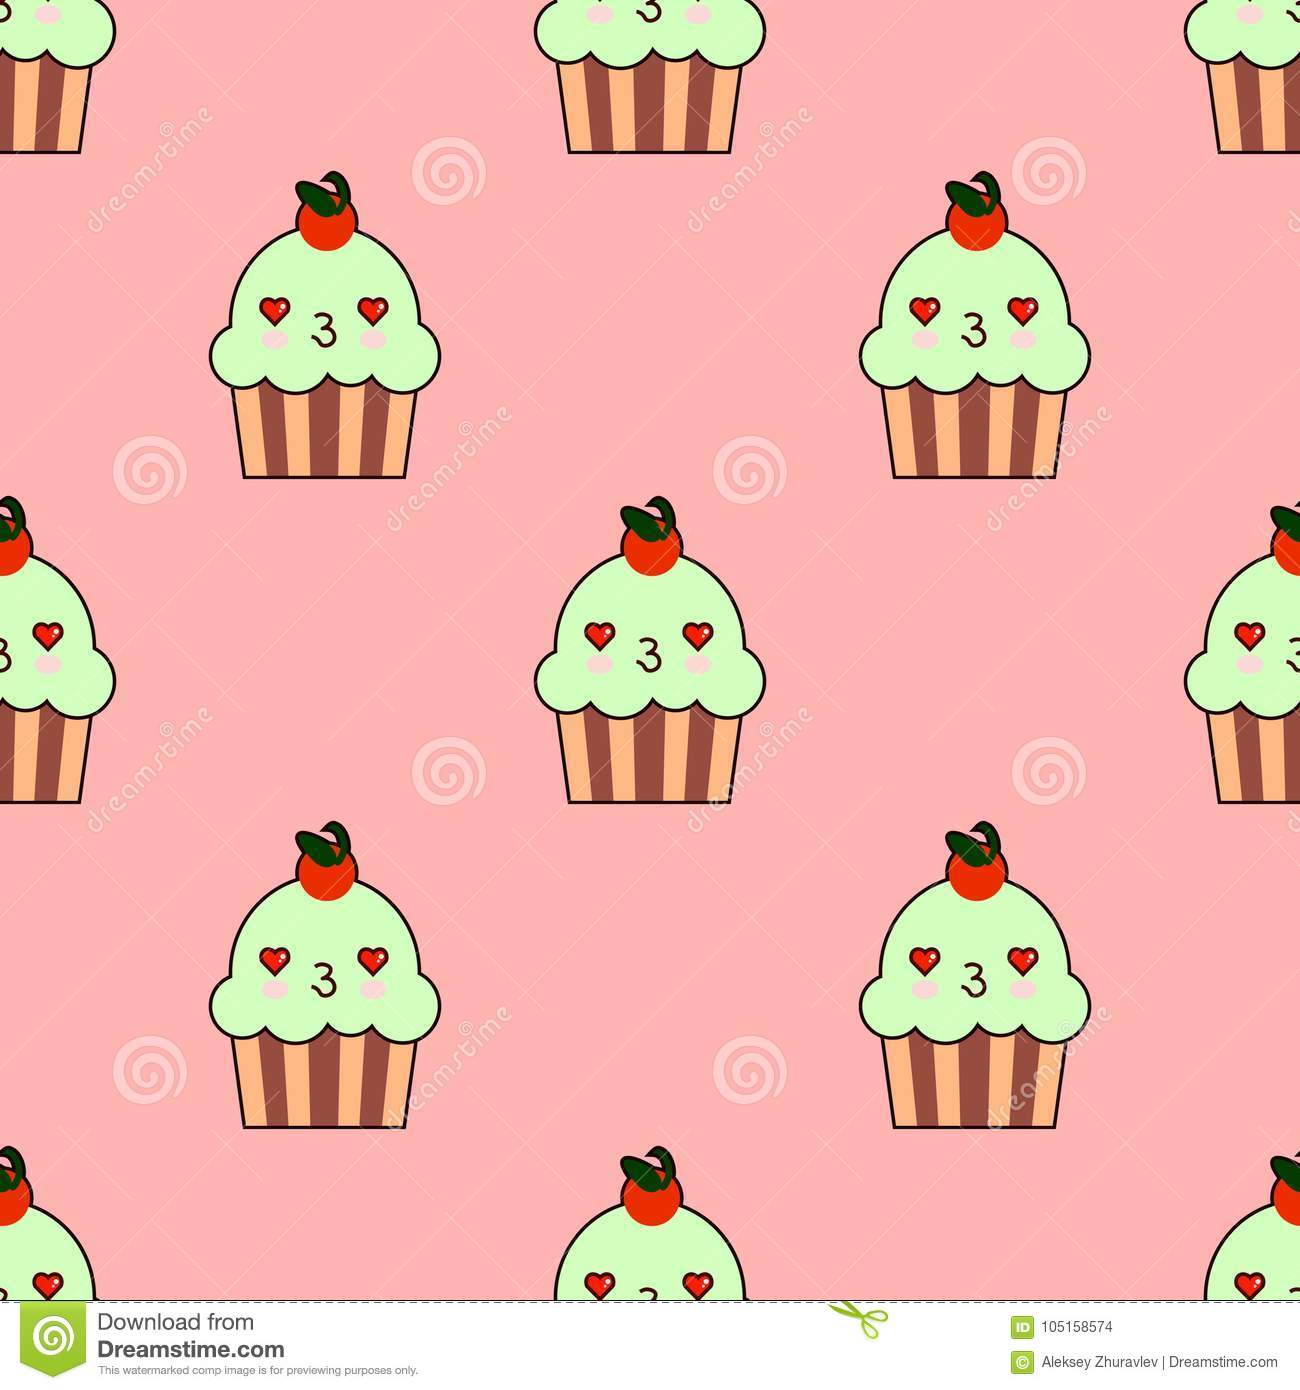 Cute Cupcake Seamless Pattern With Kawaii Faces Smiley Cup Cakes Charry Topping Flat